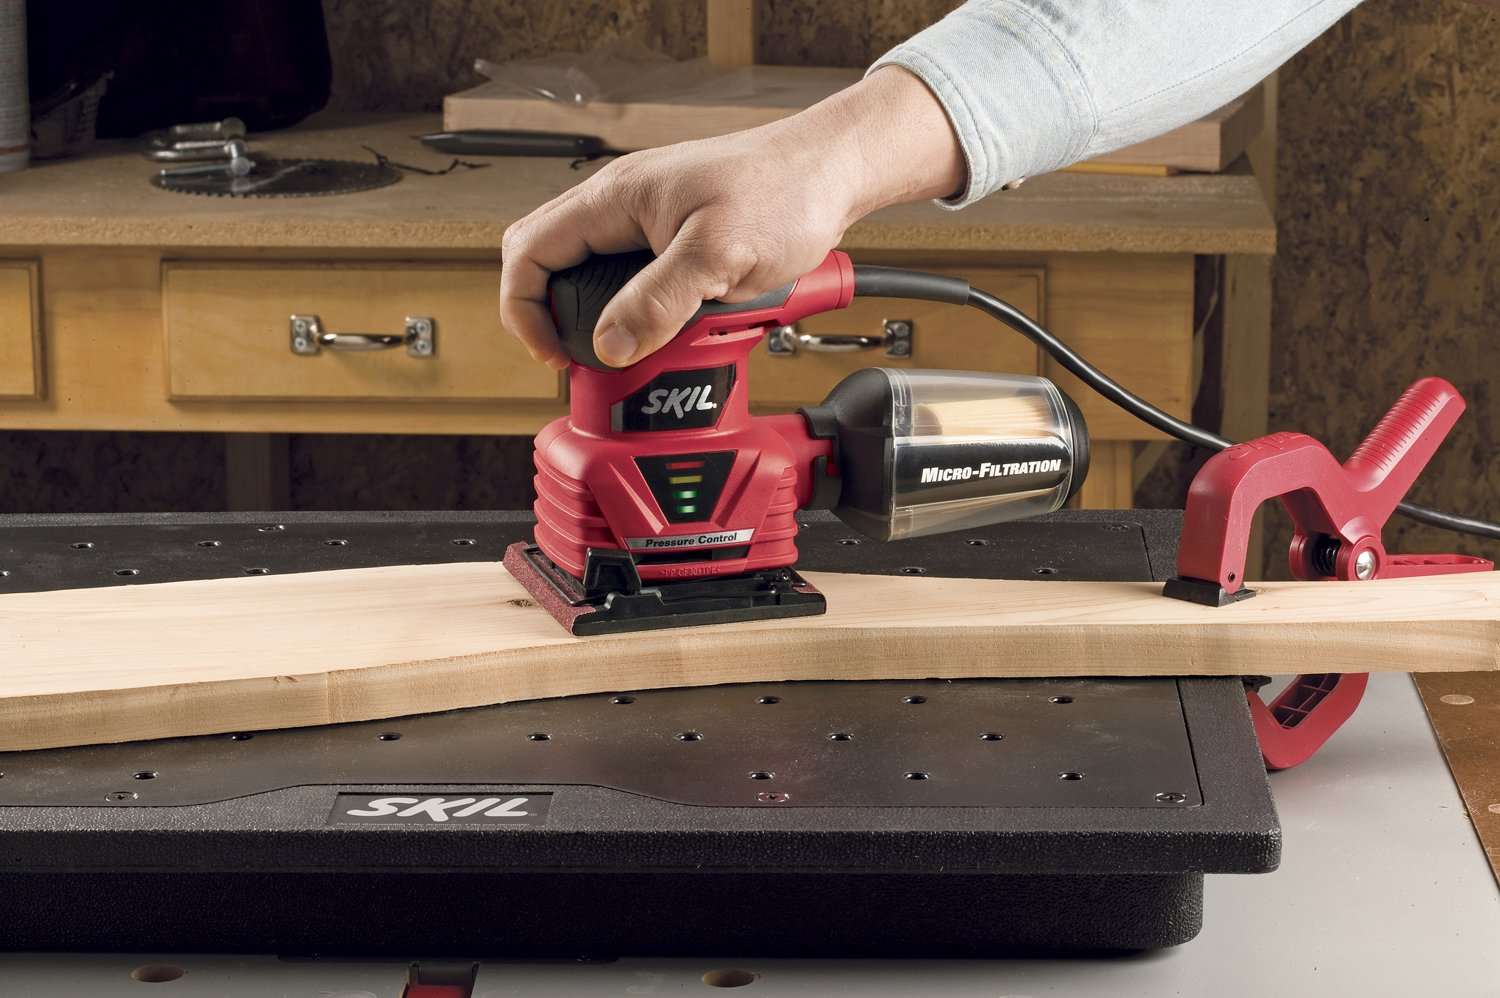 SKIL 7292-02 2.0 Amp 1/4 Sheet Palm Sander with Pressure Control by Skil (Image #3)